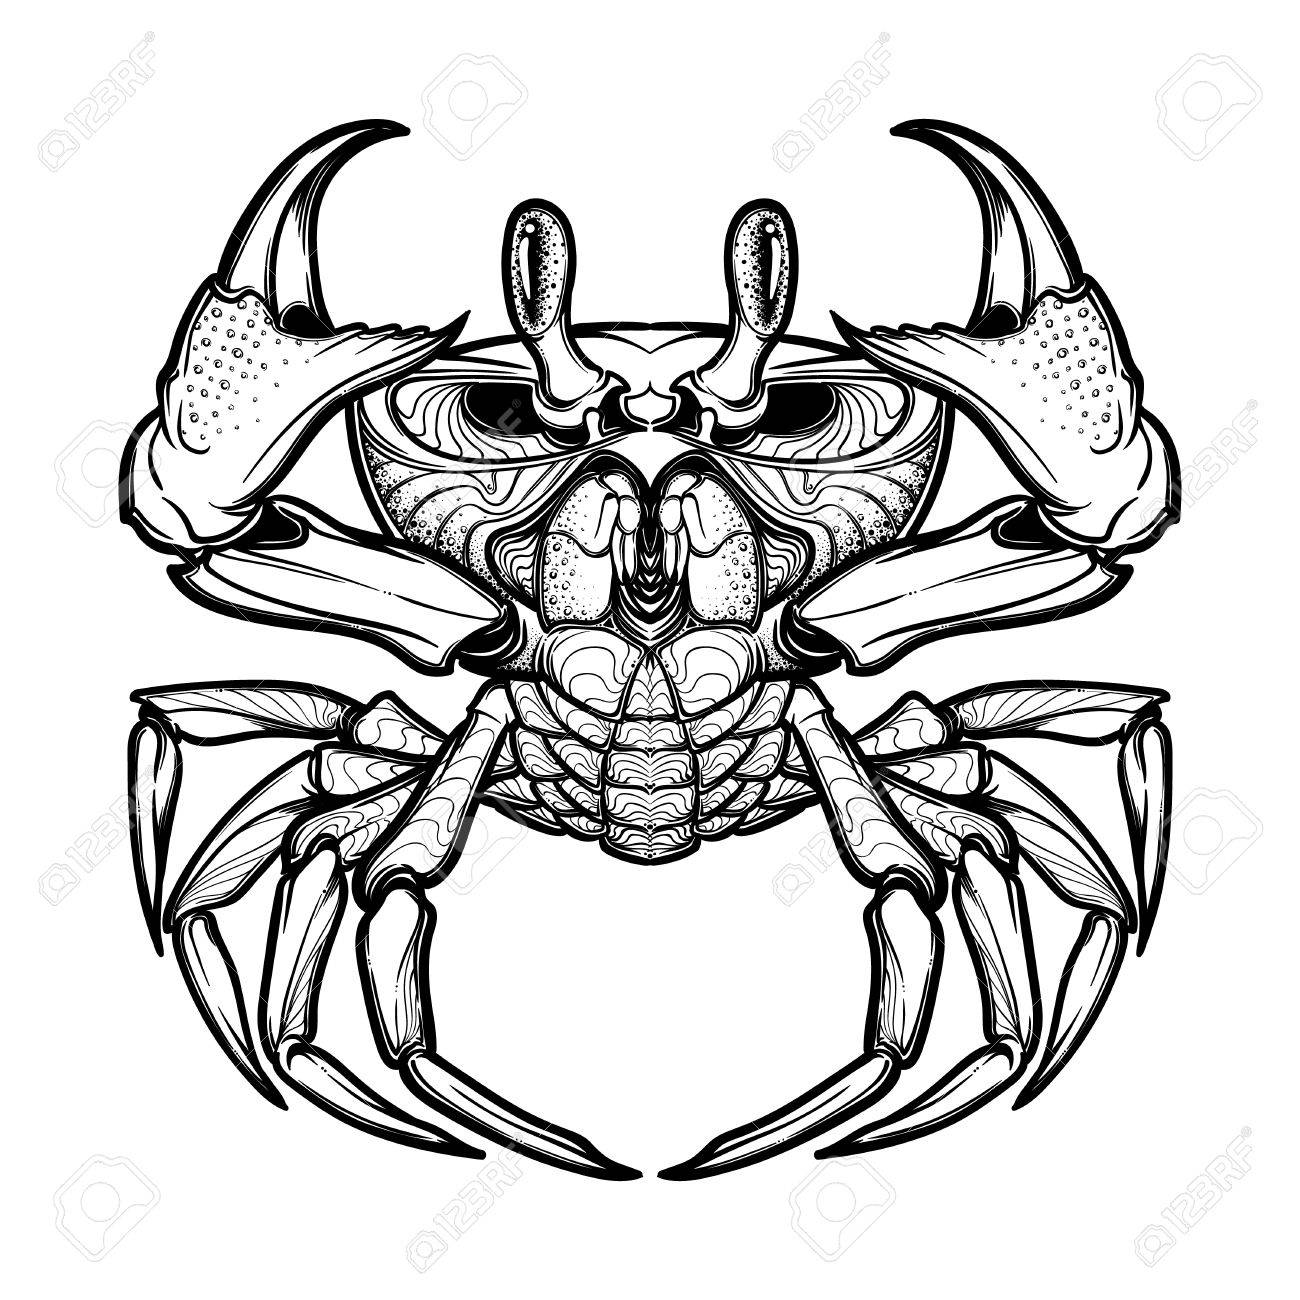 1300x1300 Cancer. Accurate Symmetrical Drawing Of The Beach Crab. Concept